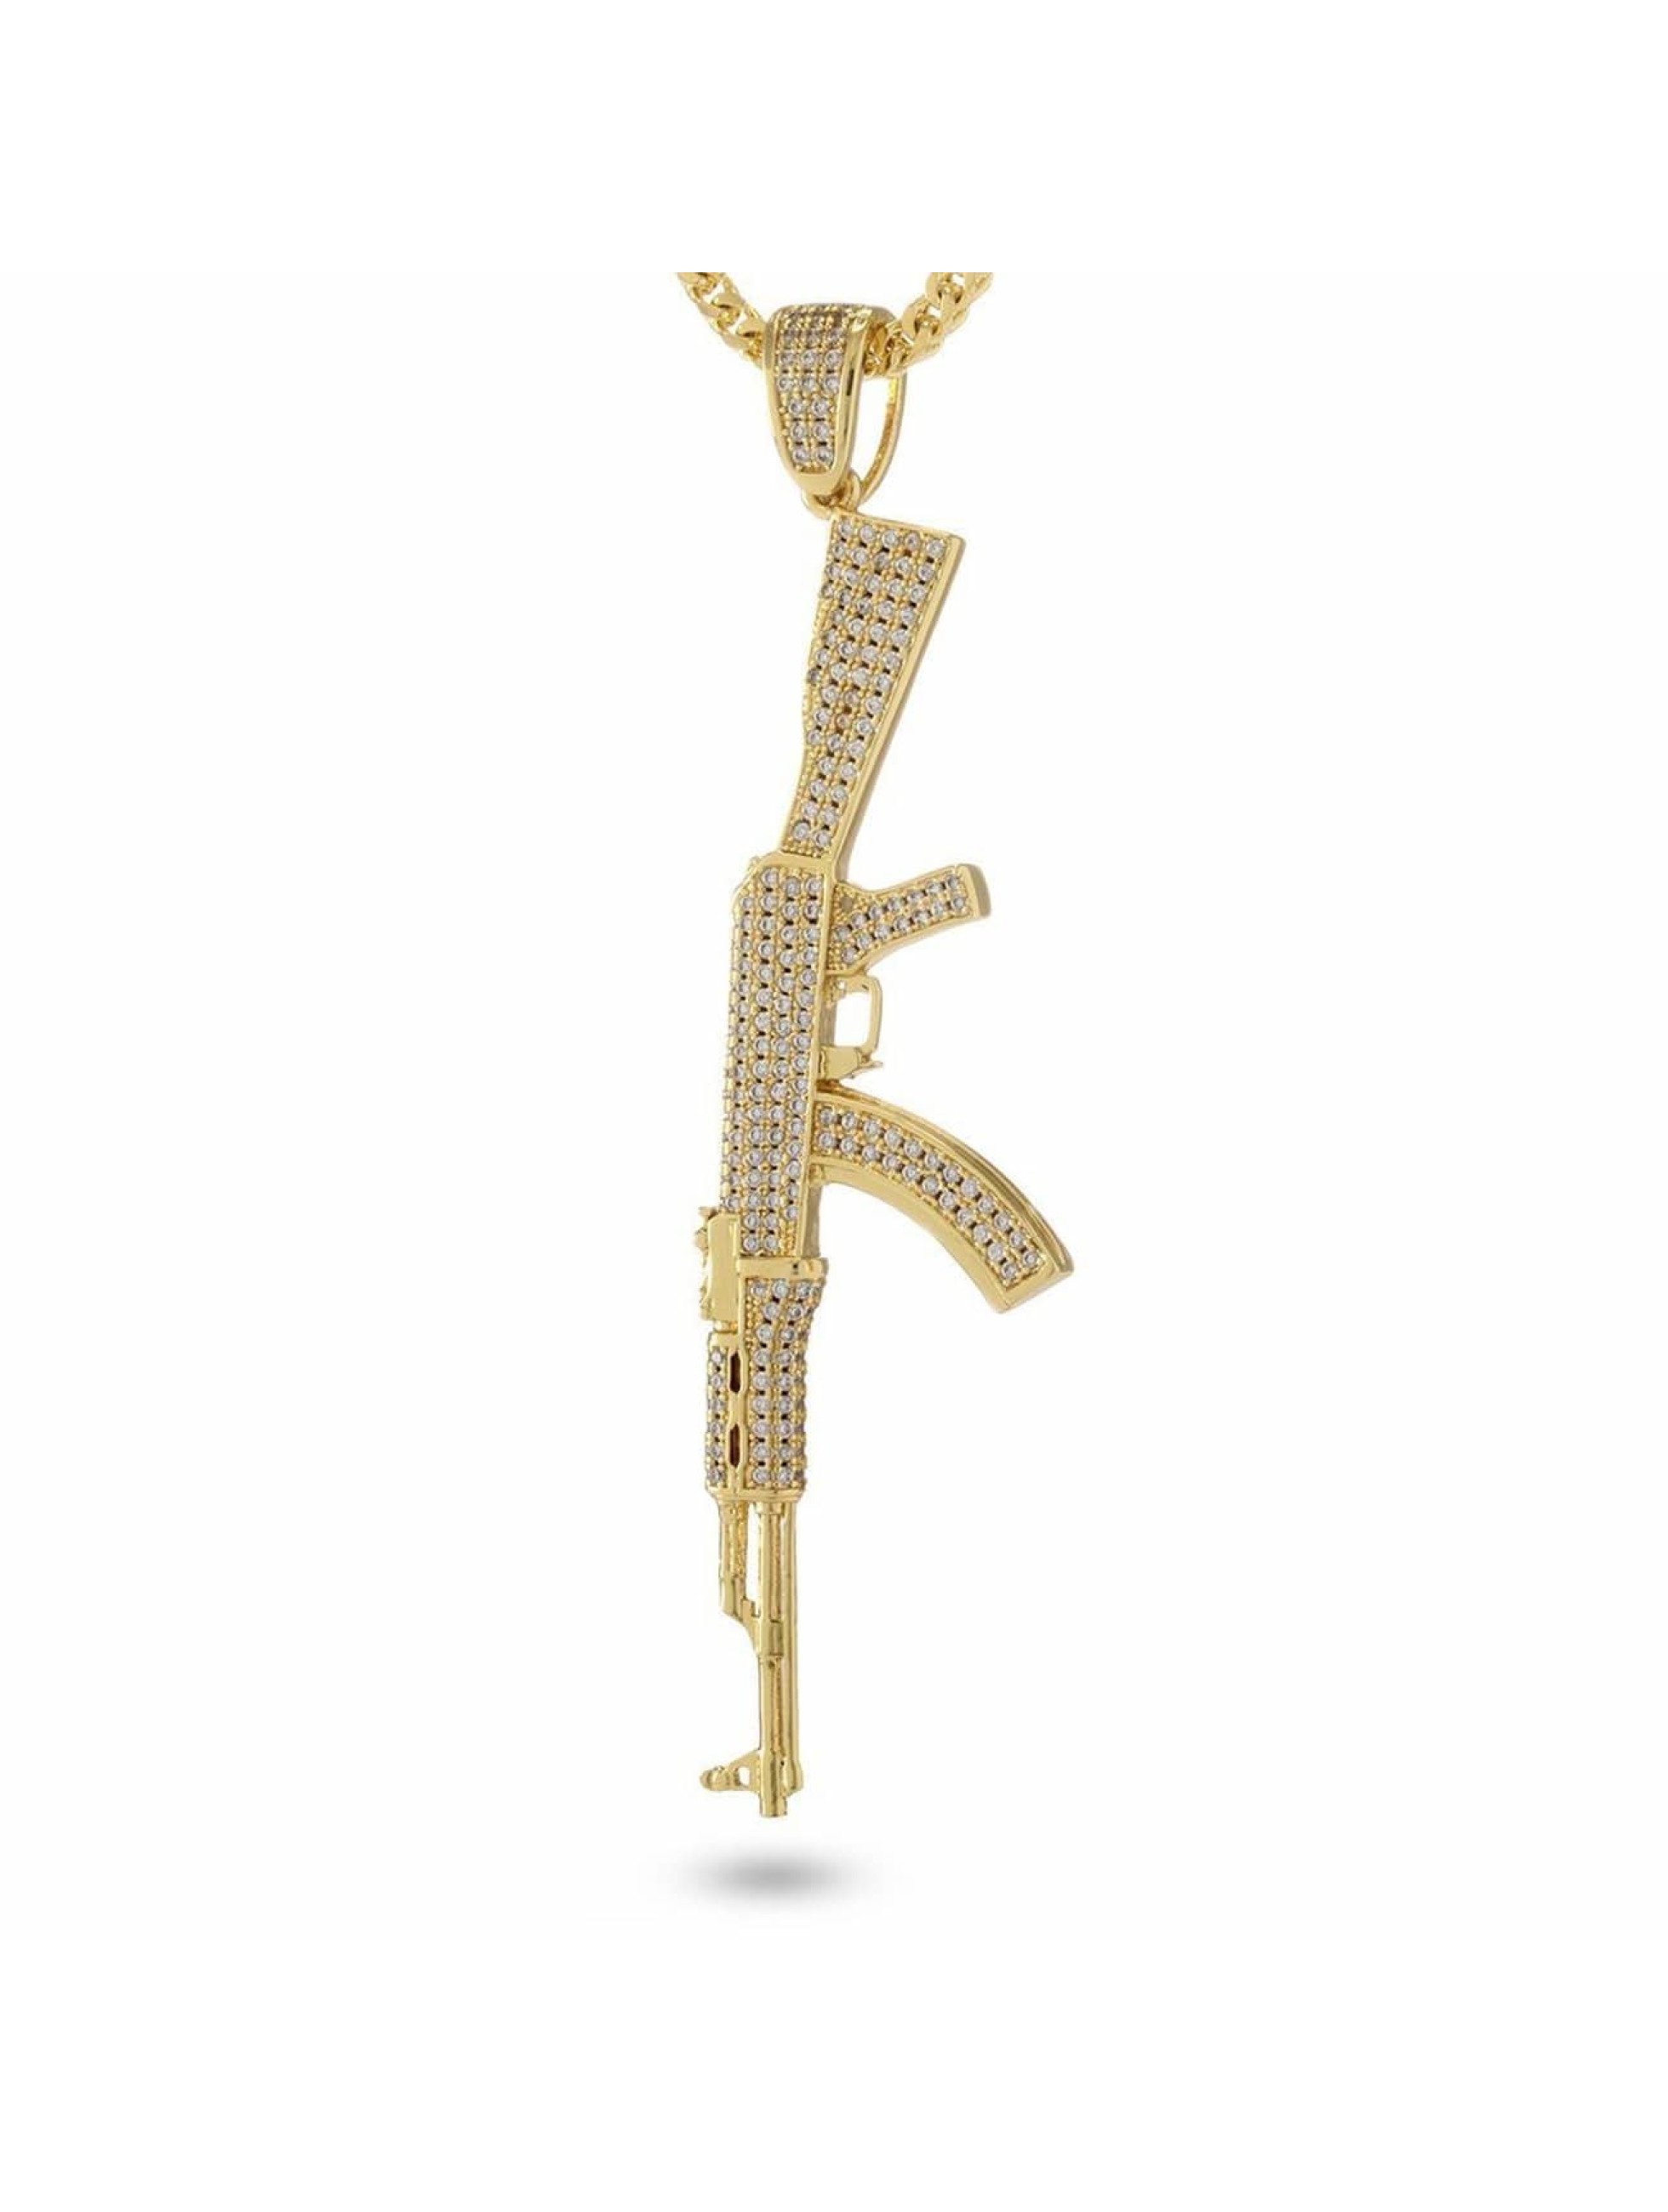 KING ICE Necklace Studded AK-47 gold colored